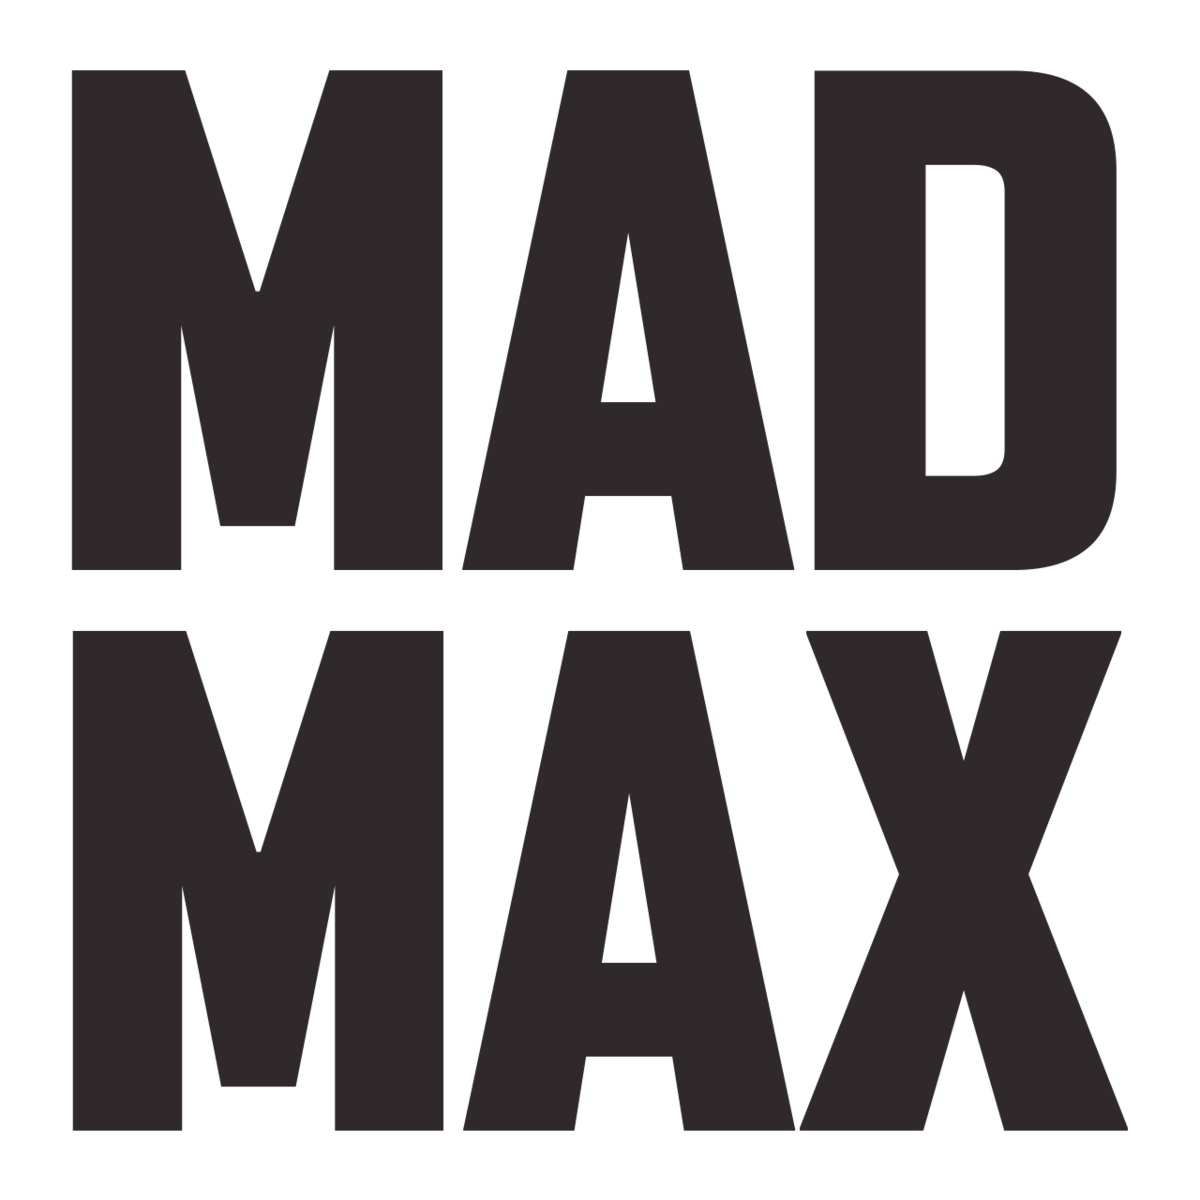 Mad max logo png the future. Franchise wikipedia